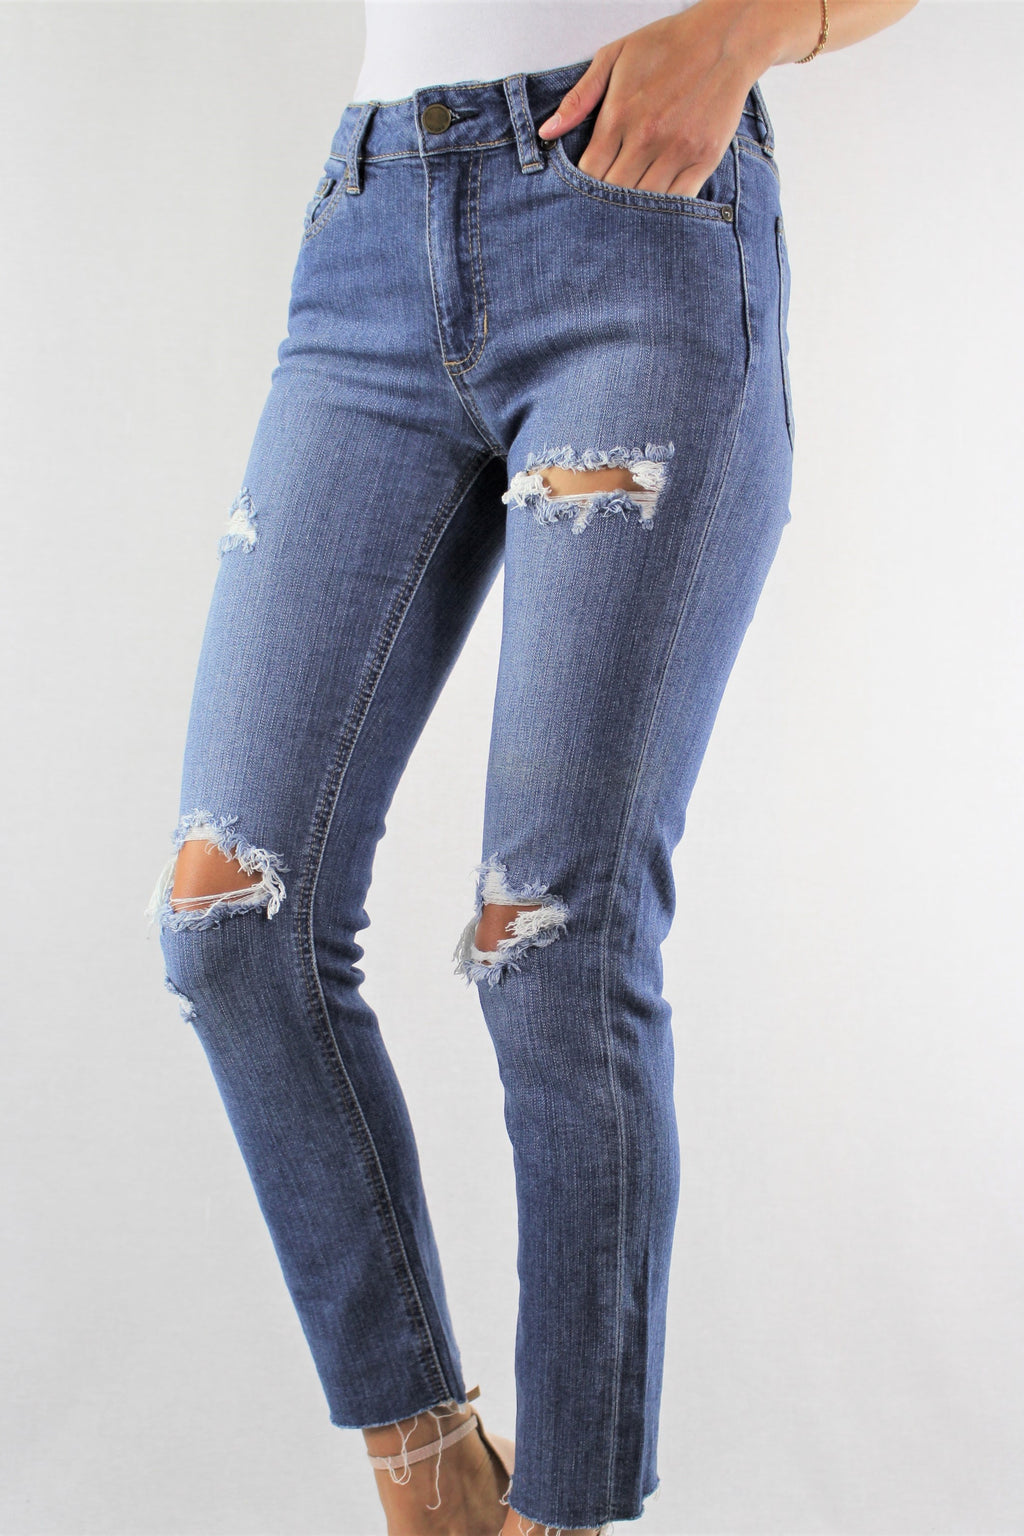 Straight Cut Ripped Jeans